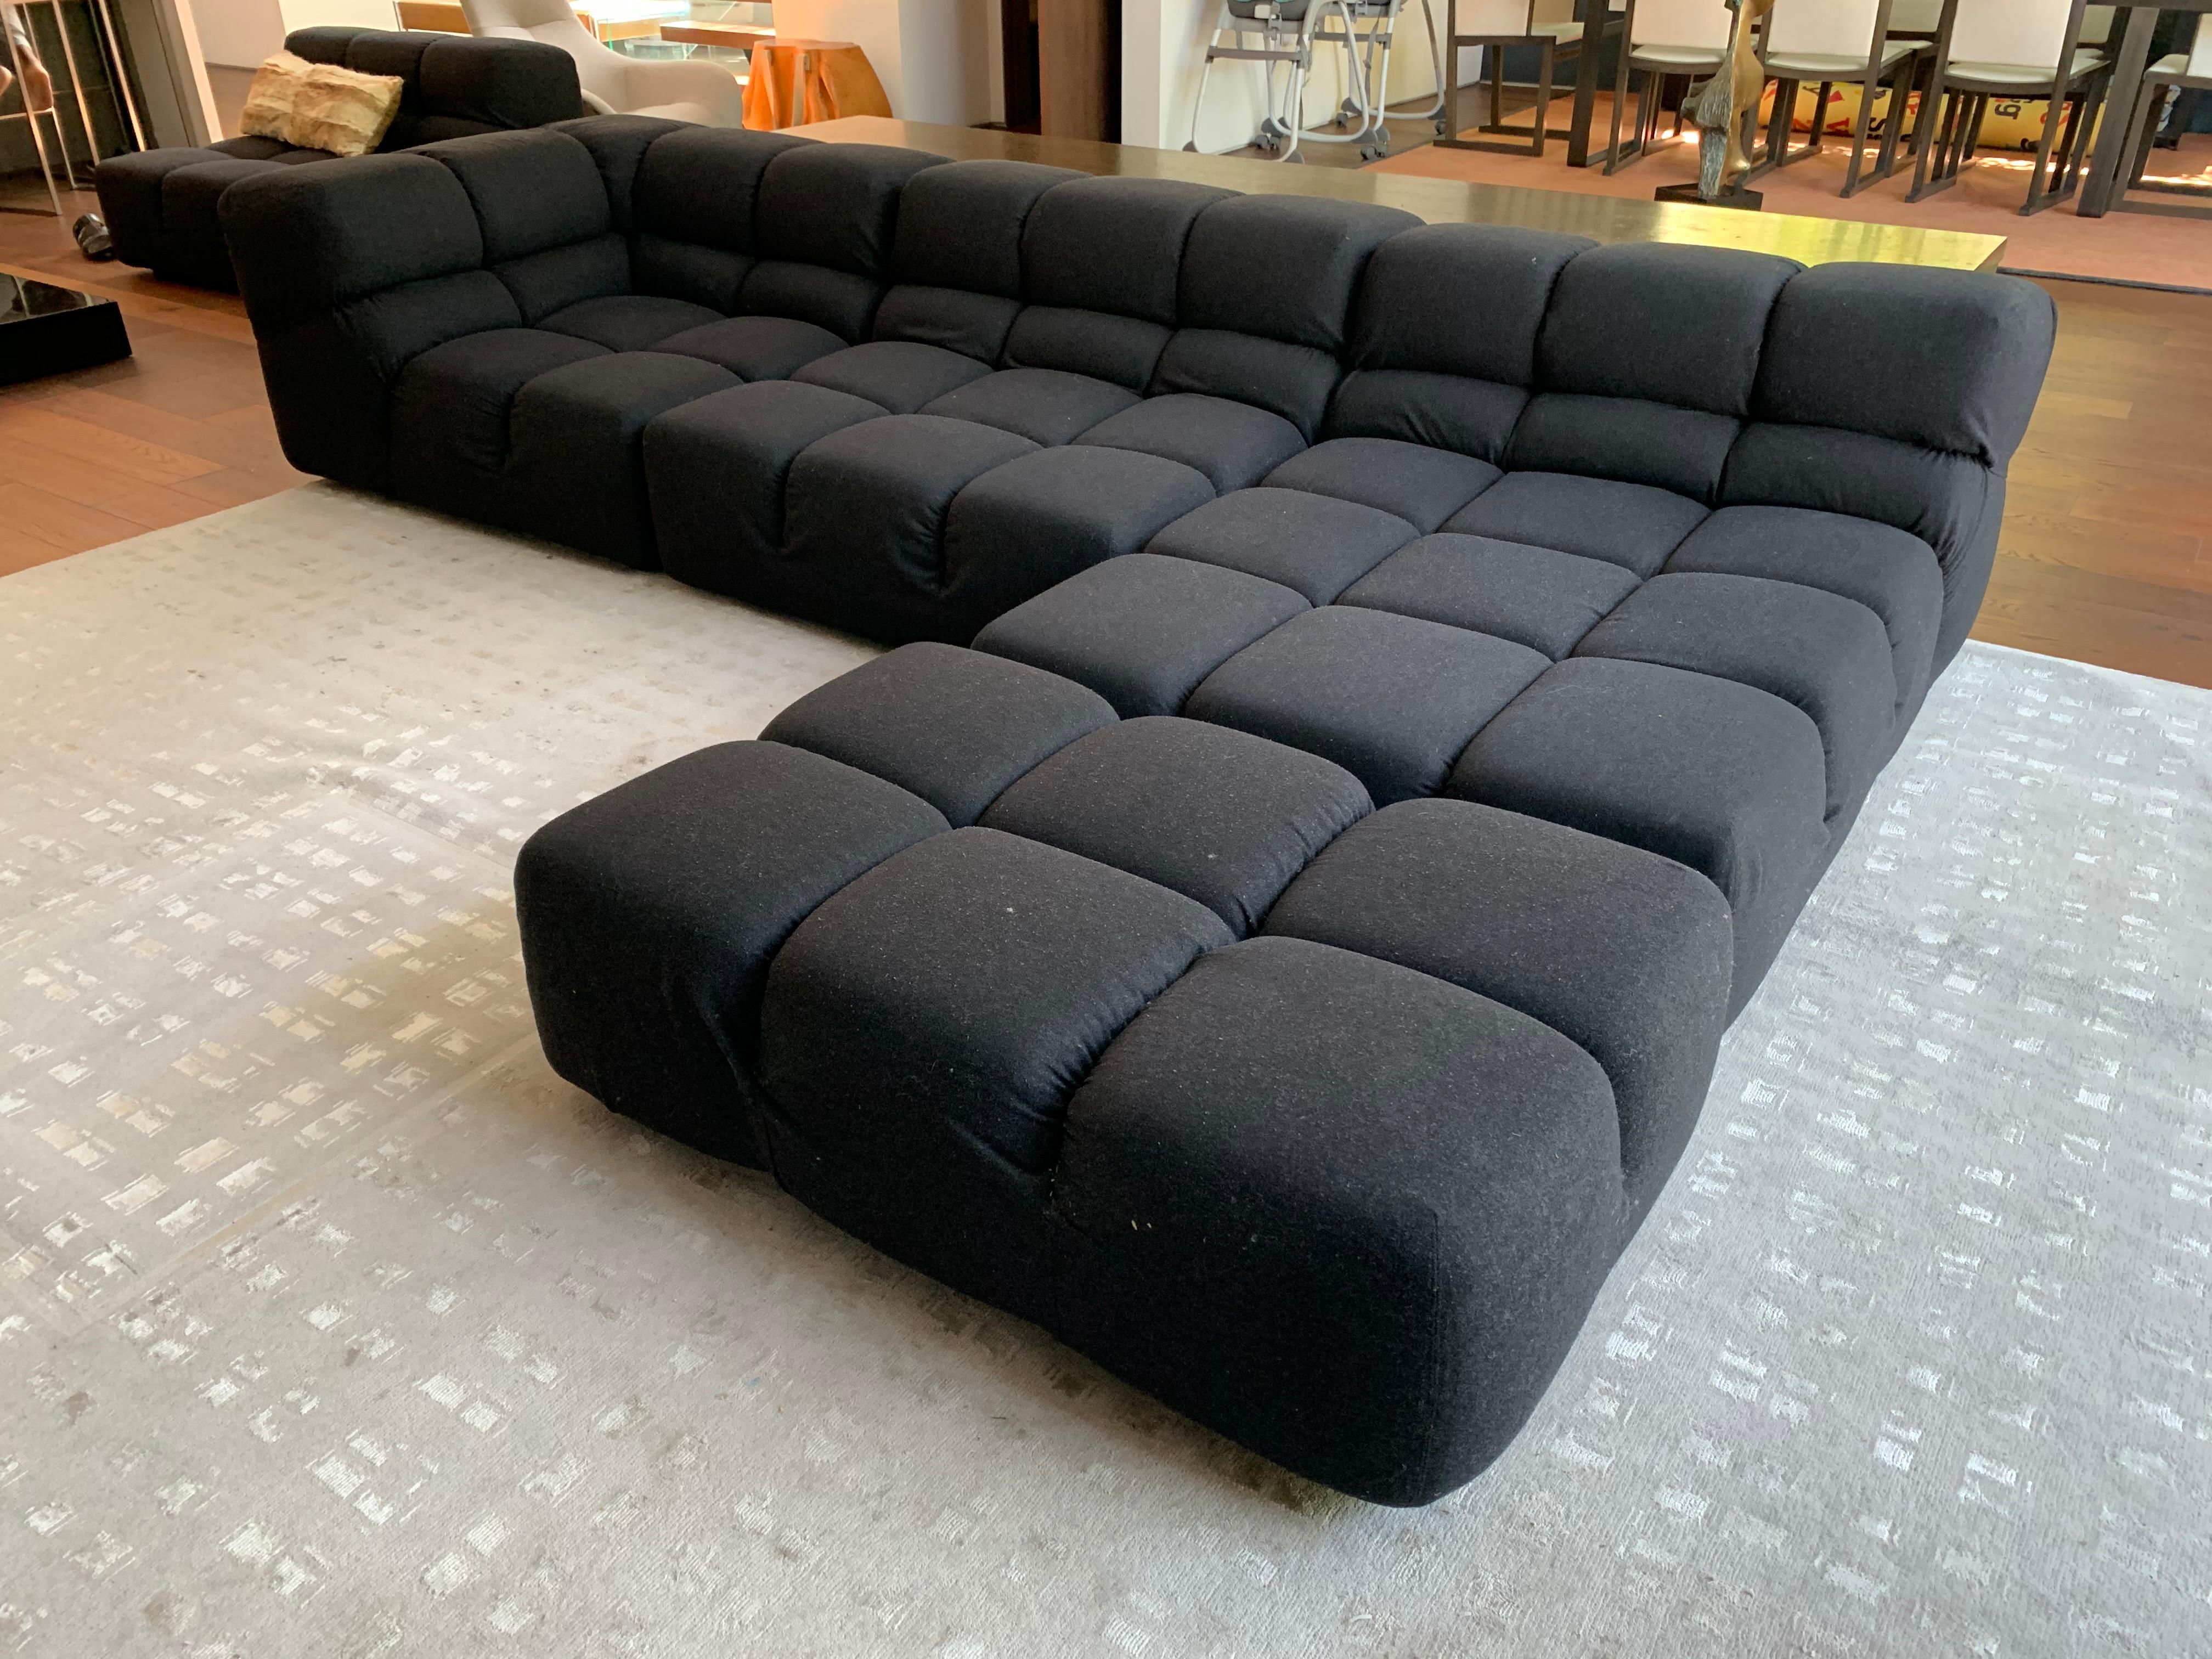 Tufty Time Sectional Sofa By Patricia Urquiola For B B Italia At 1stdibs